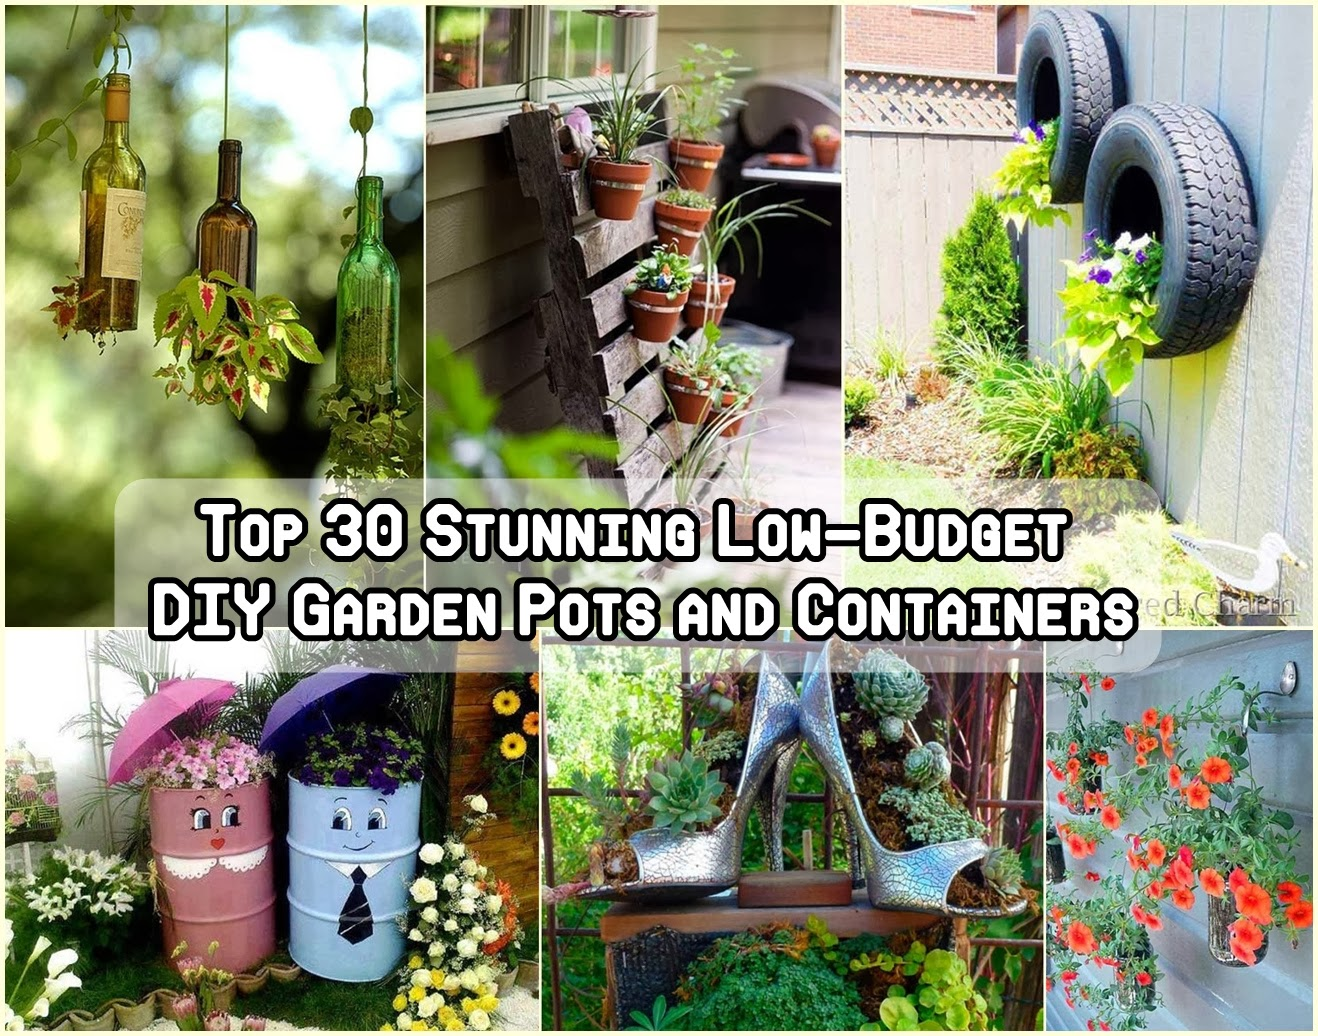 Top 30 amazing low budget diy garden pots and containers for Flower garden ideas on a budget